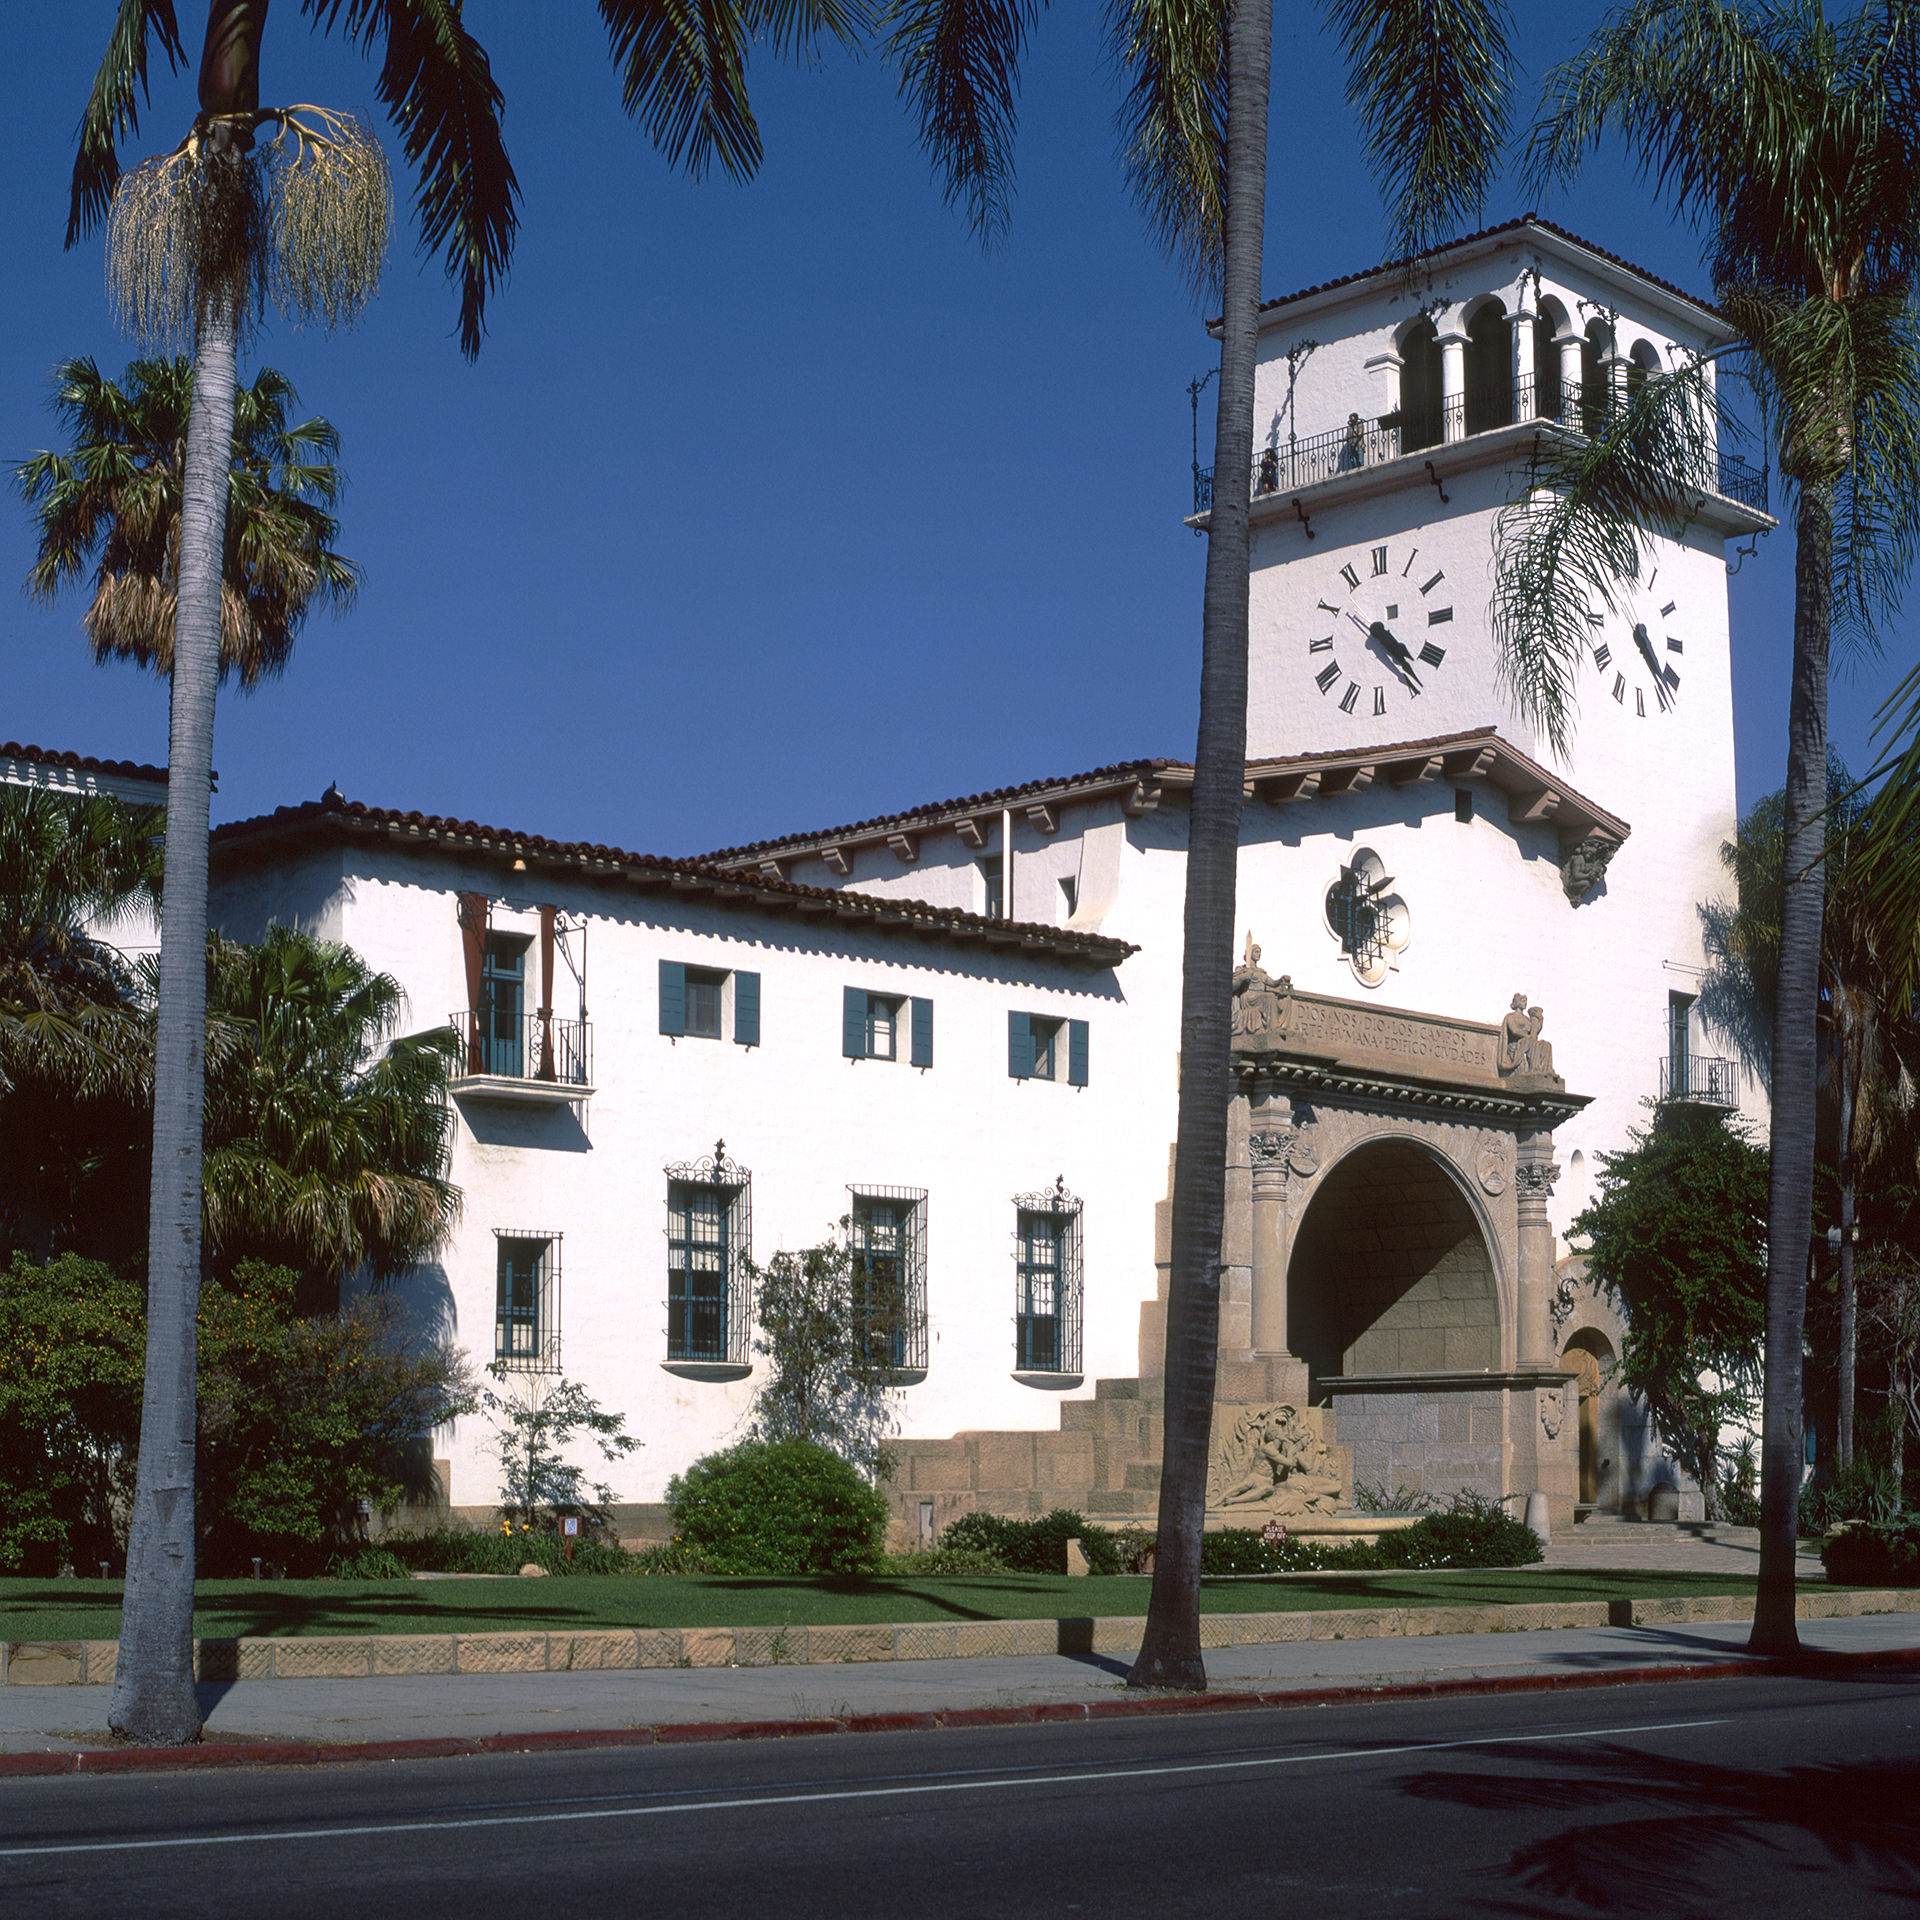 Possibly Santa Barbara Town Hall